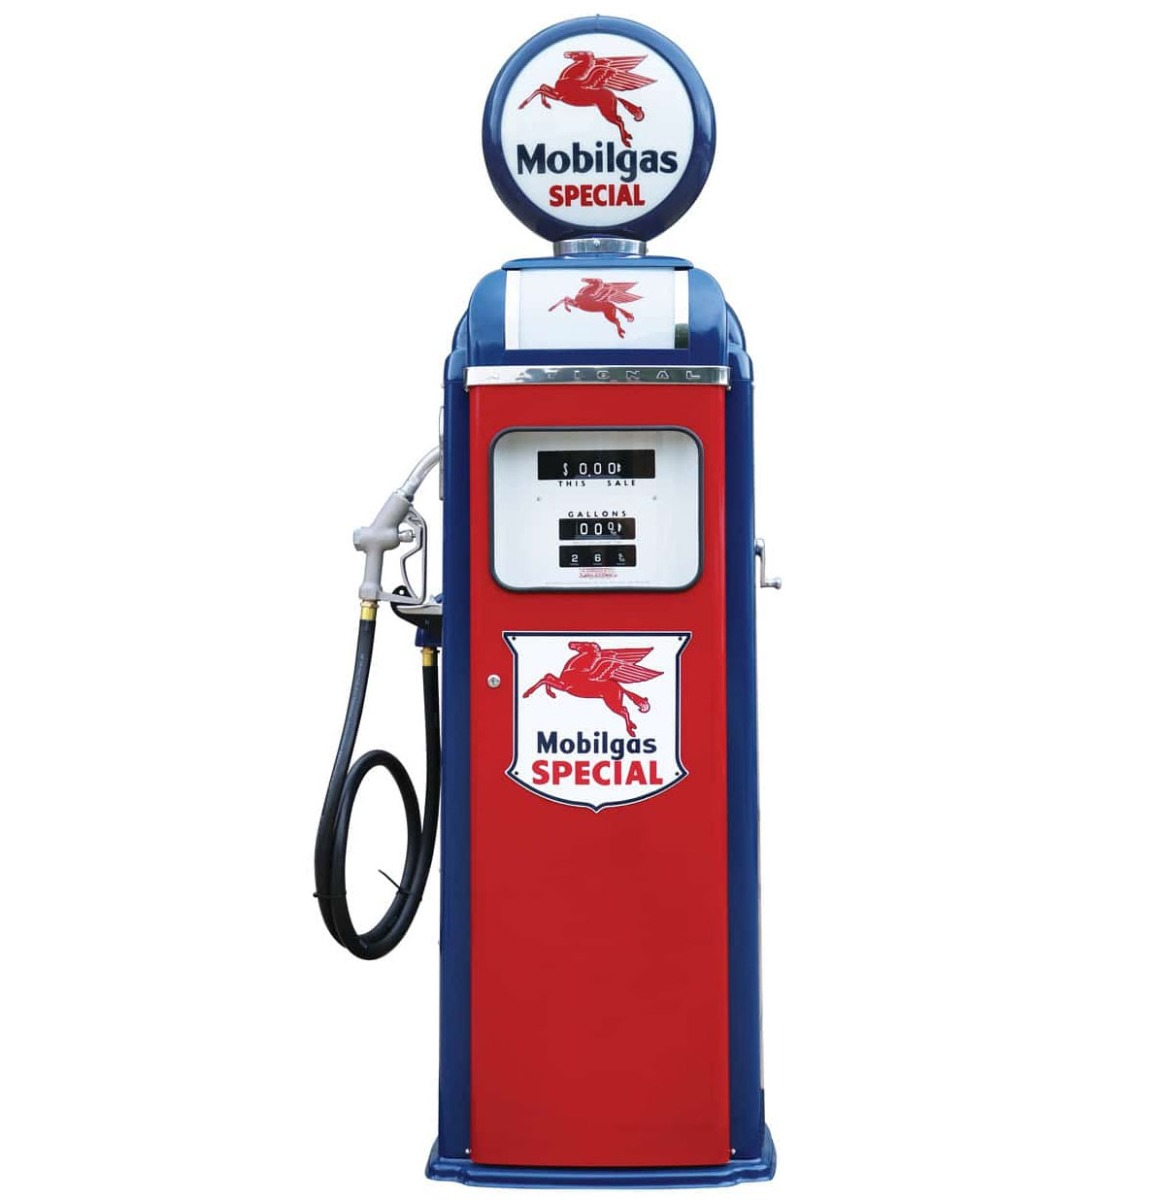 Mobilgas Special National 360 Computer Face Benzinepomp - Rood & Blauw - Reproductie